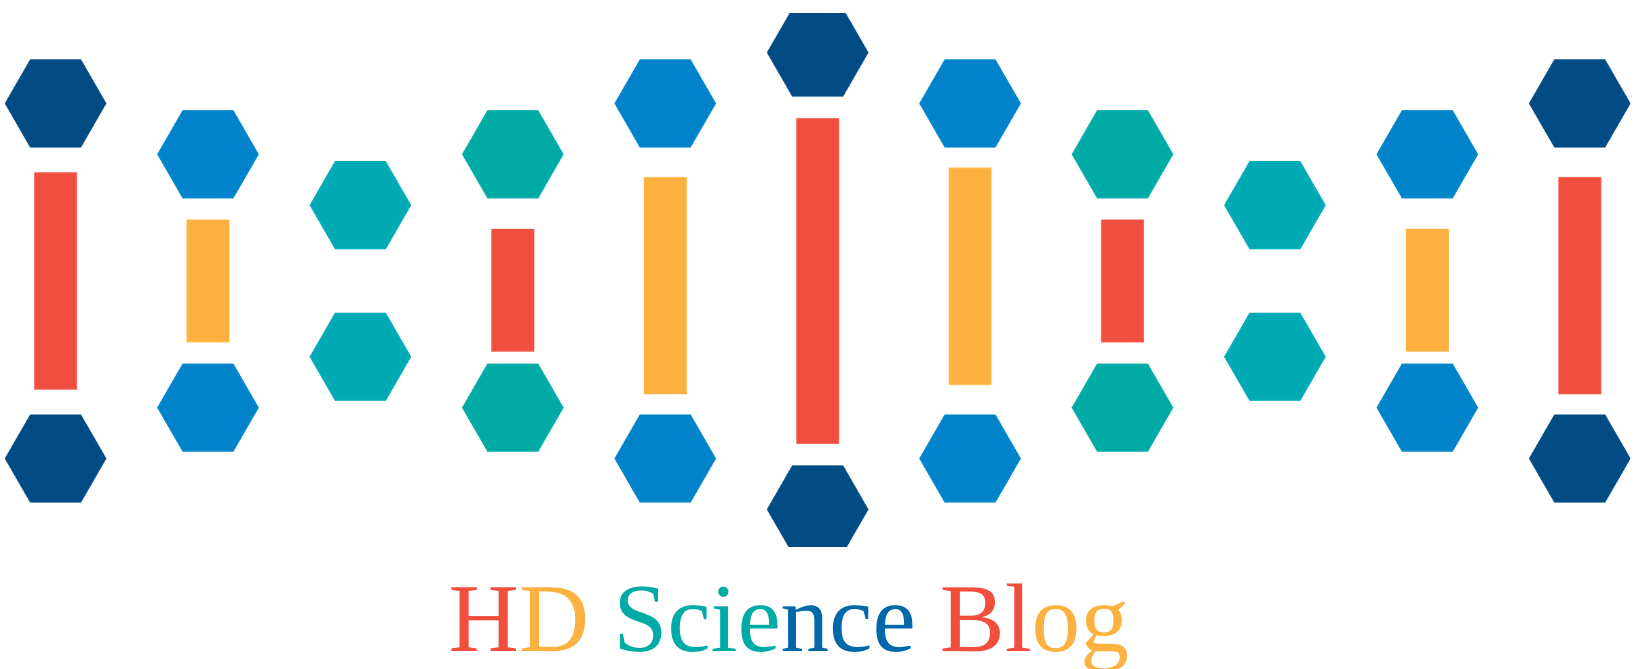 HD Science Blog